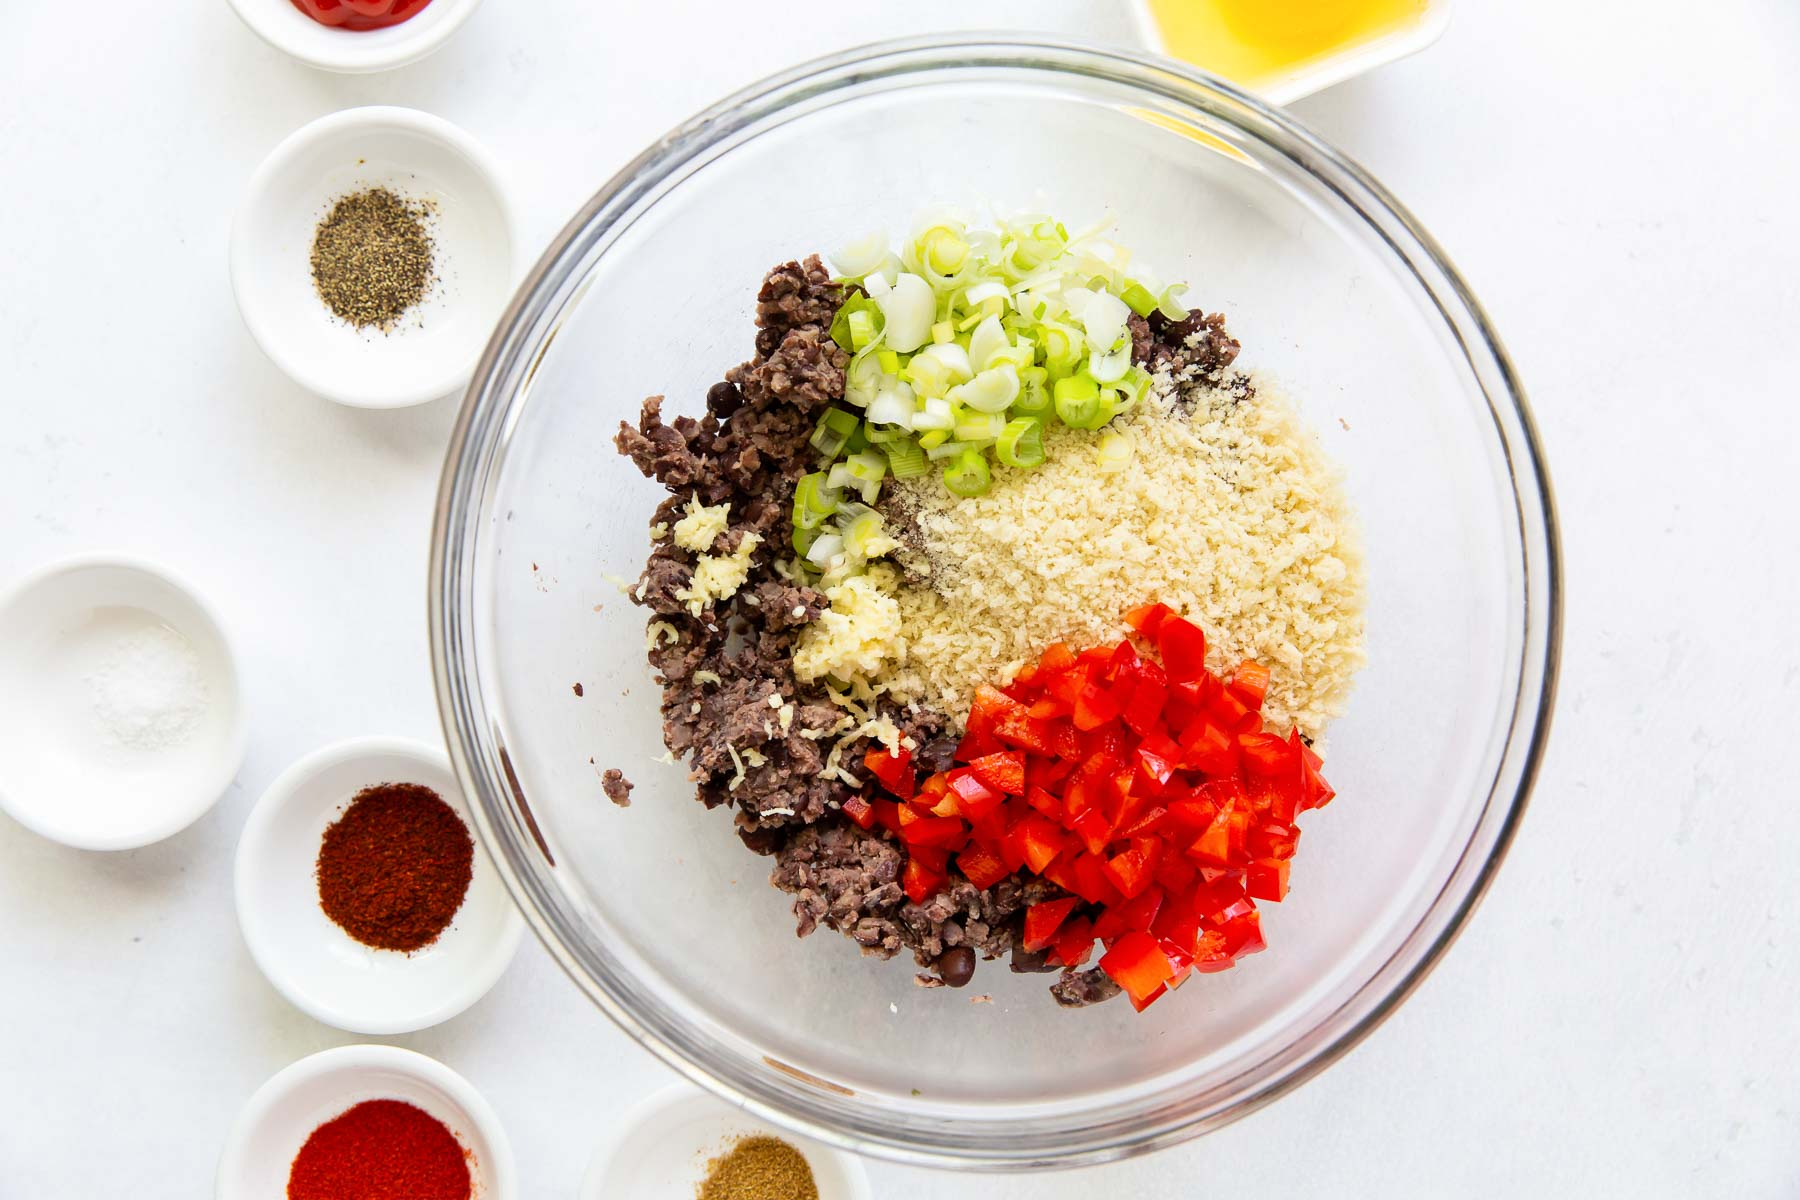 mashed black beans, panko, bell pepper and green onion in bowl